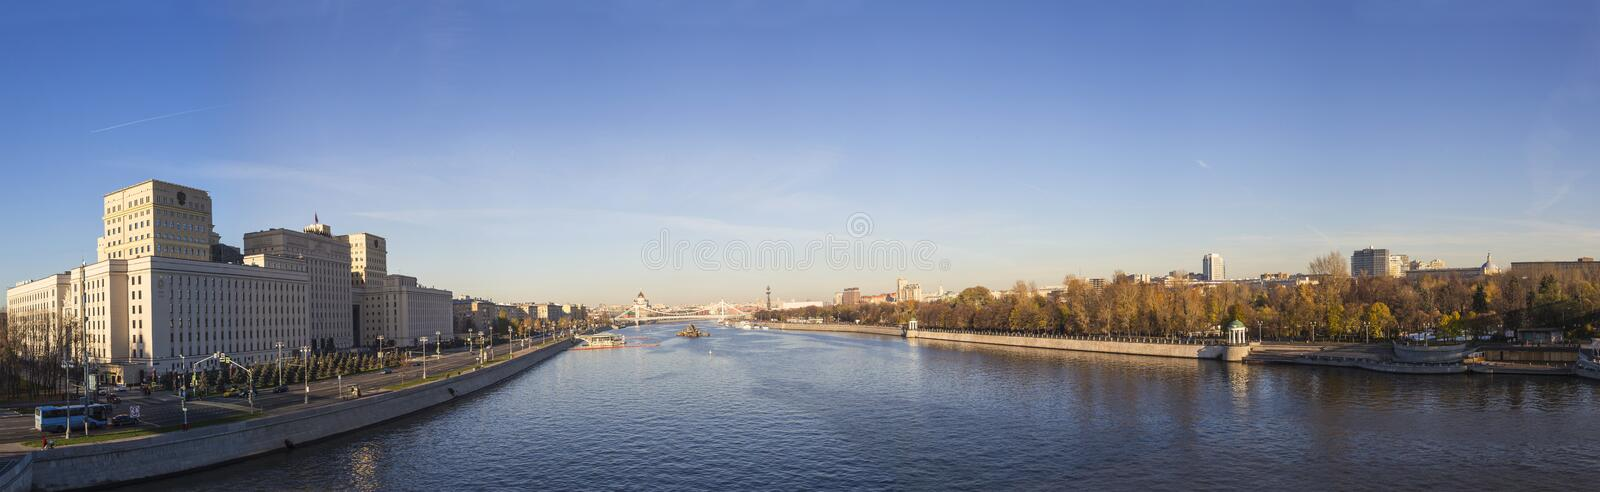 Main Building of the Ministry of Defence of the Russian Federation Minoboron-- is the governing body of the Russian Armed Forces. And Moskva River panorama royalty free stock photo